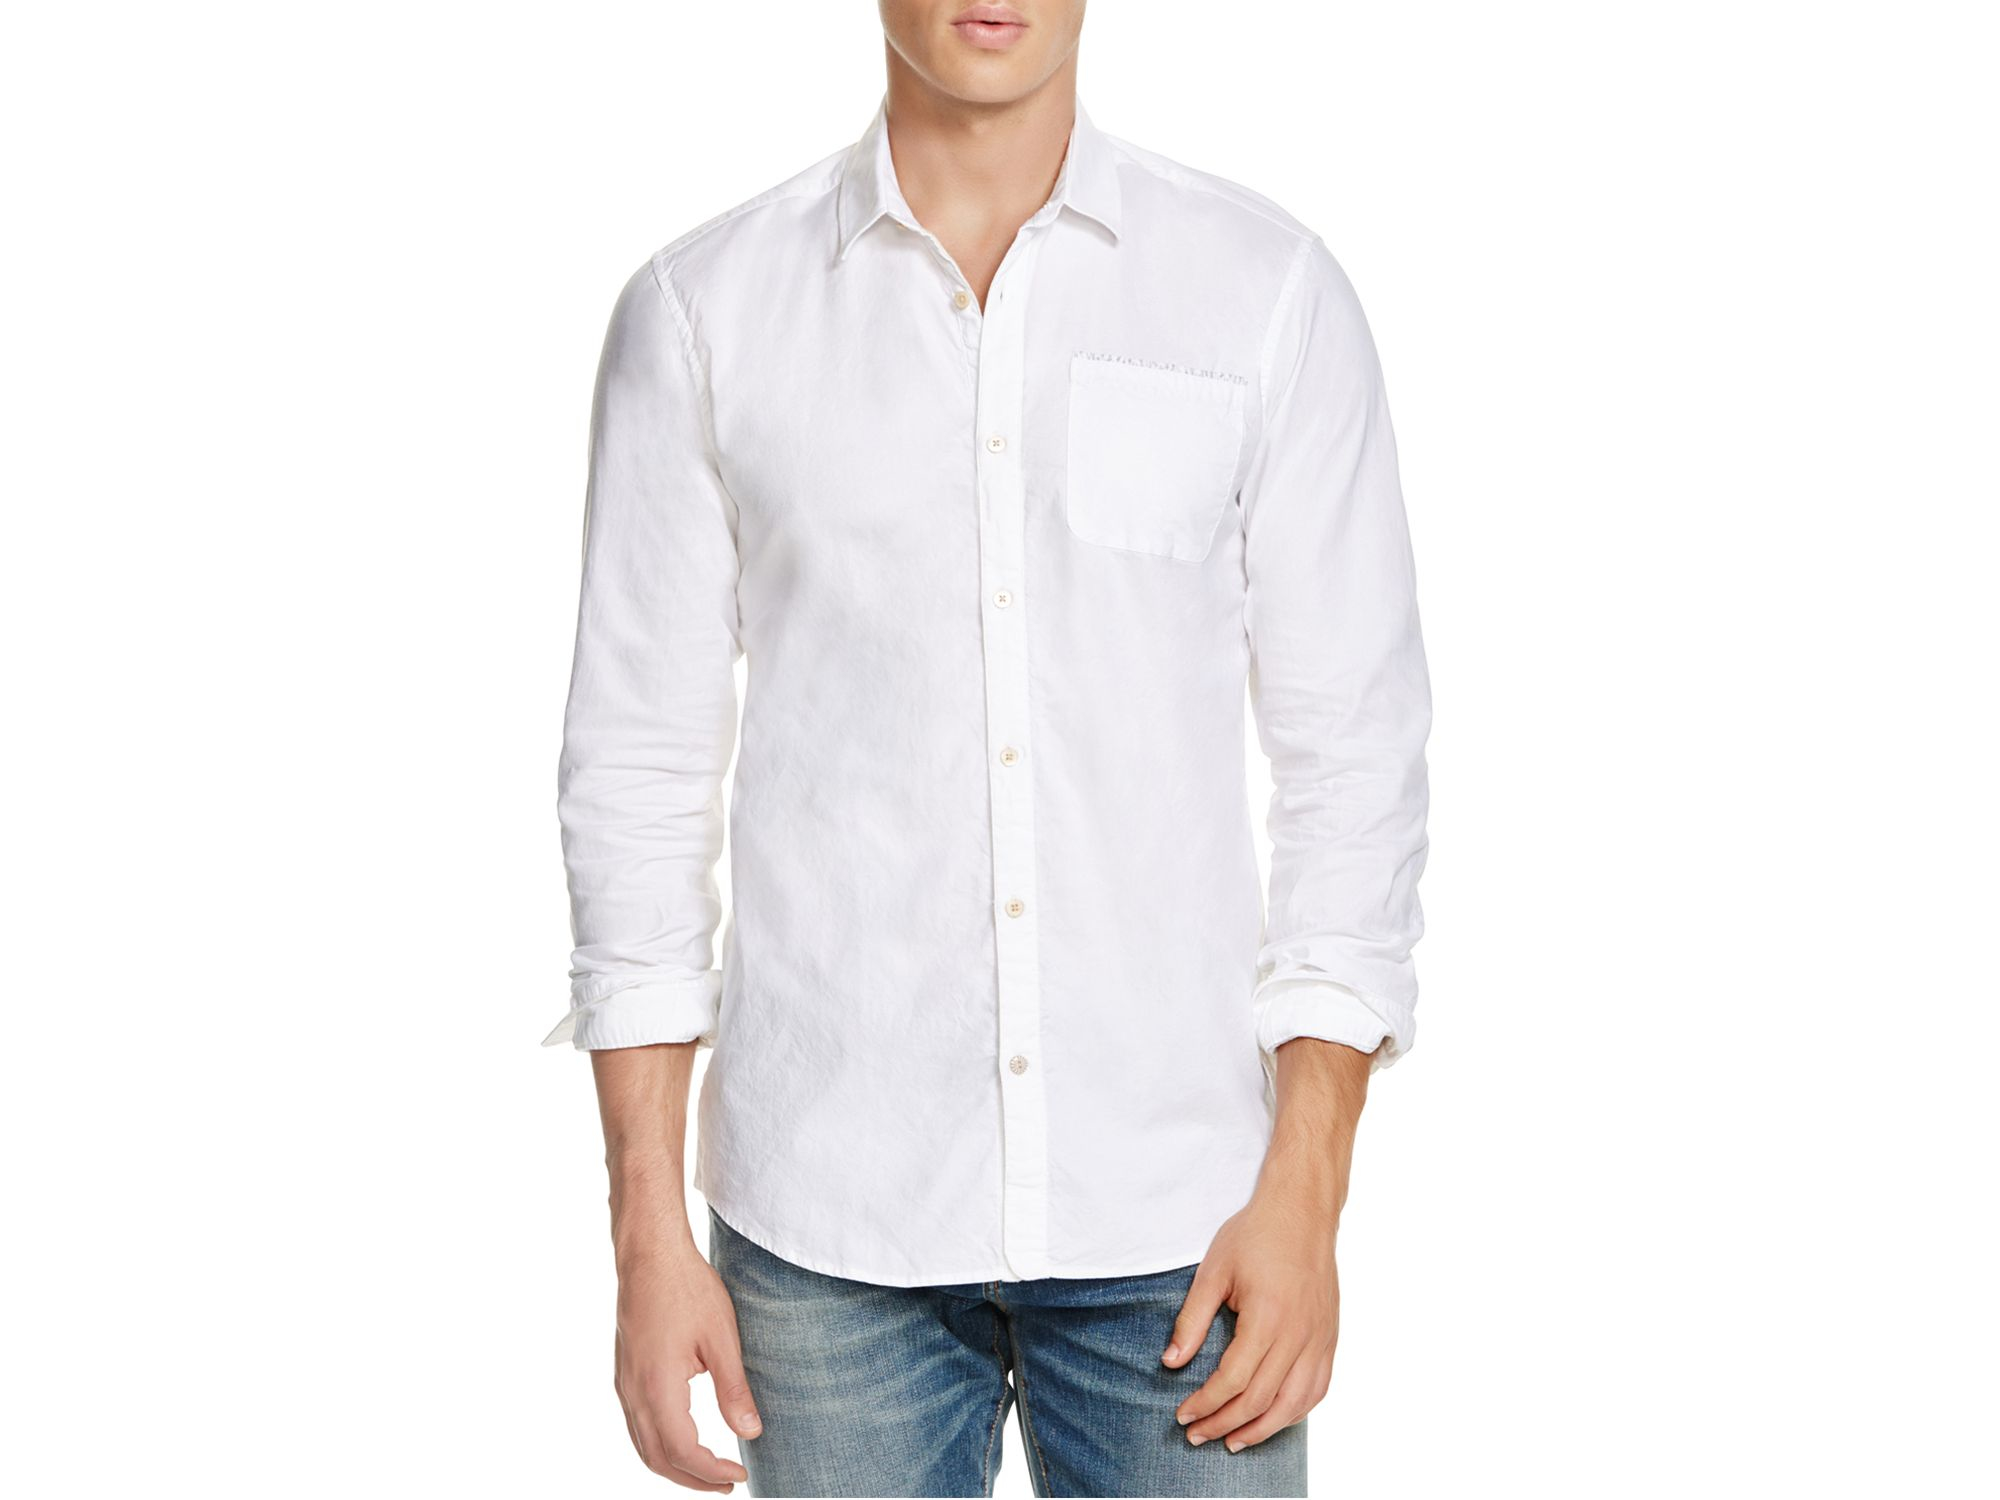 White button downoxford shirts women petal for Athletic fit button down shirts